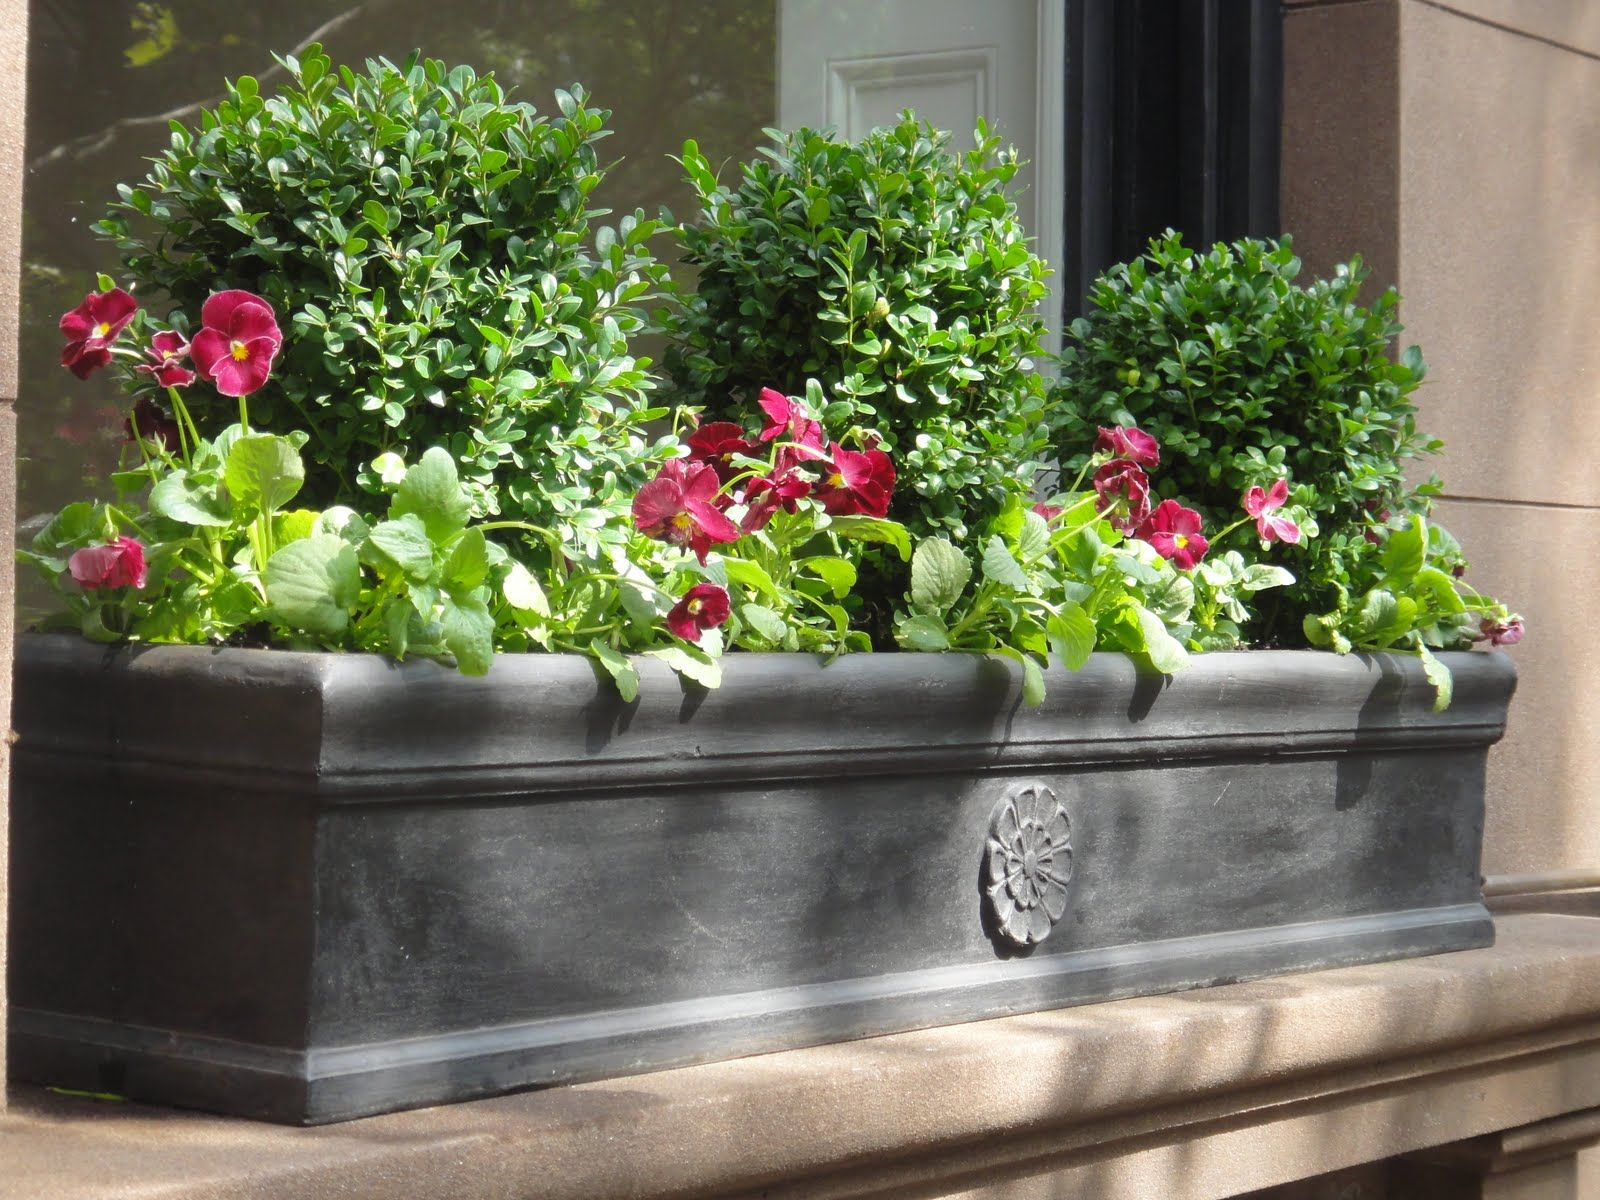 Boxwoods such as Wee Willie Boxwood are ideal for window boxes